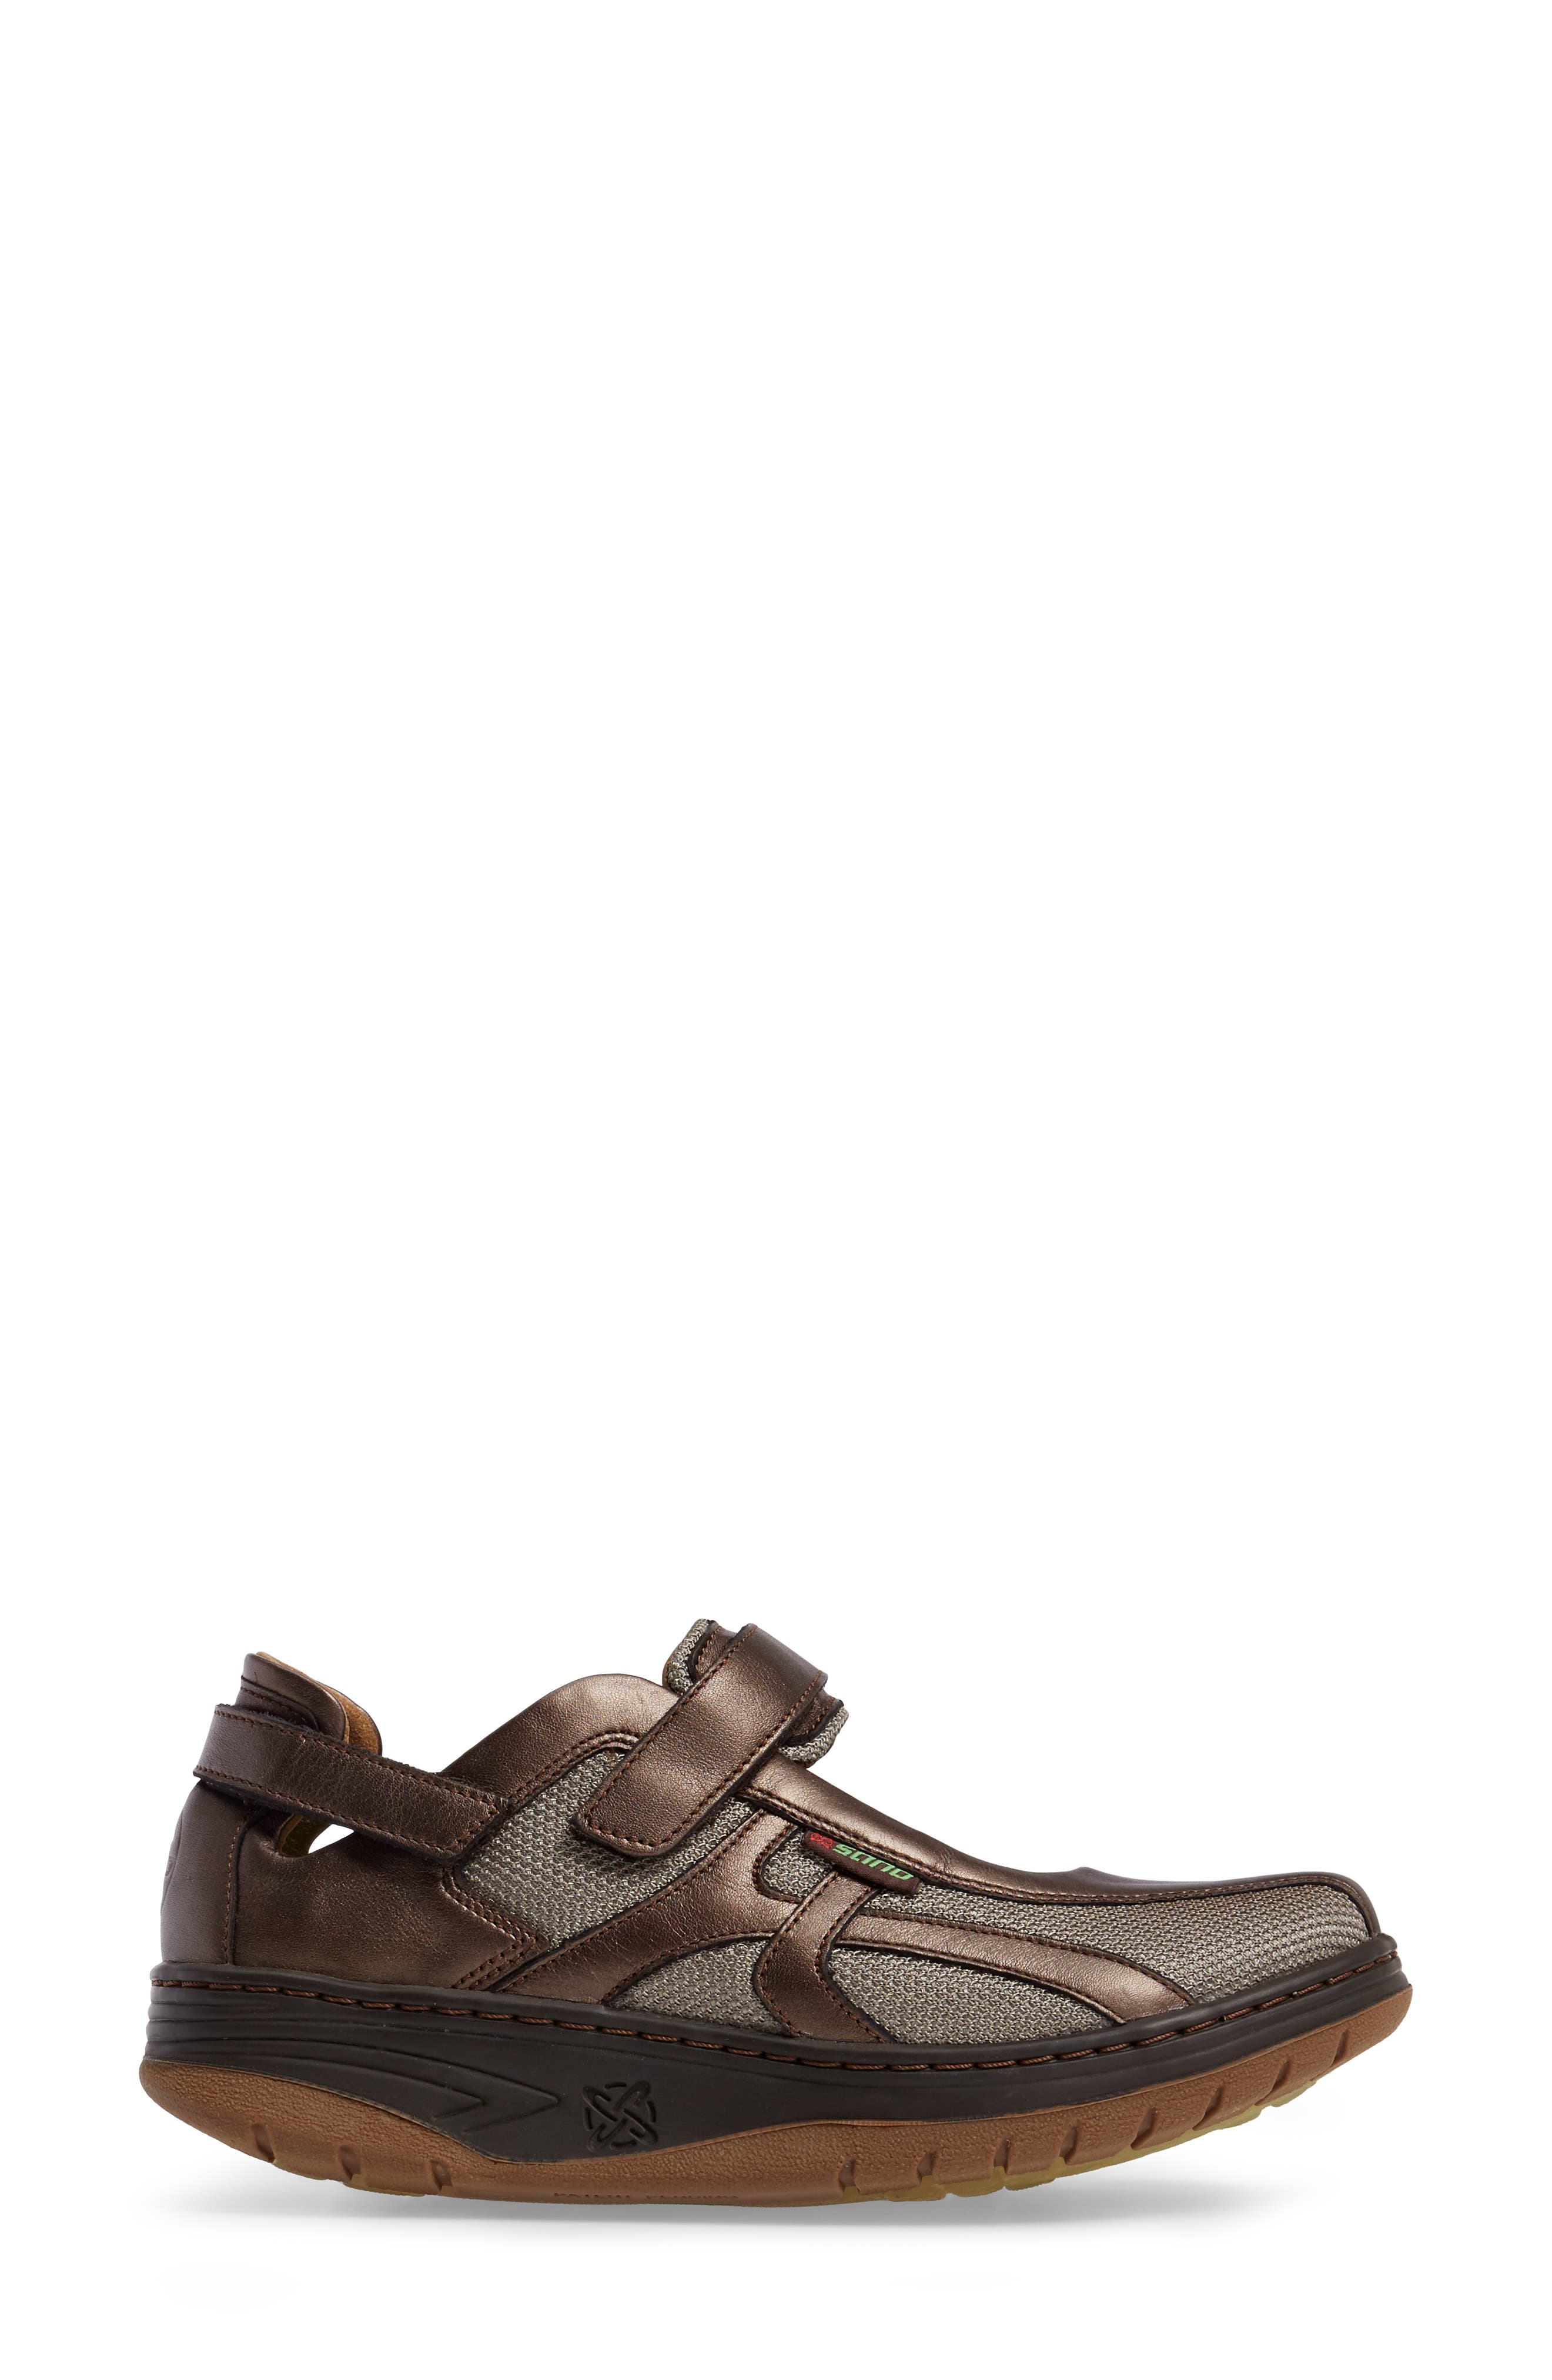 Sano by Mephisto 'Excess' Walking Shoe,                             Alternate thumbnail 11, color,